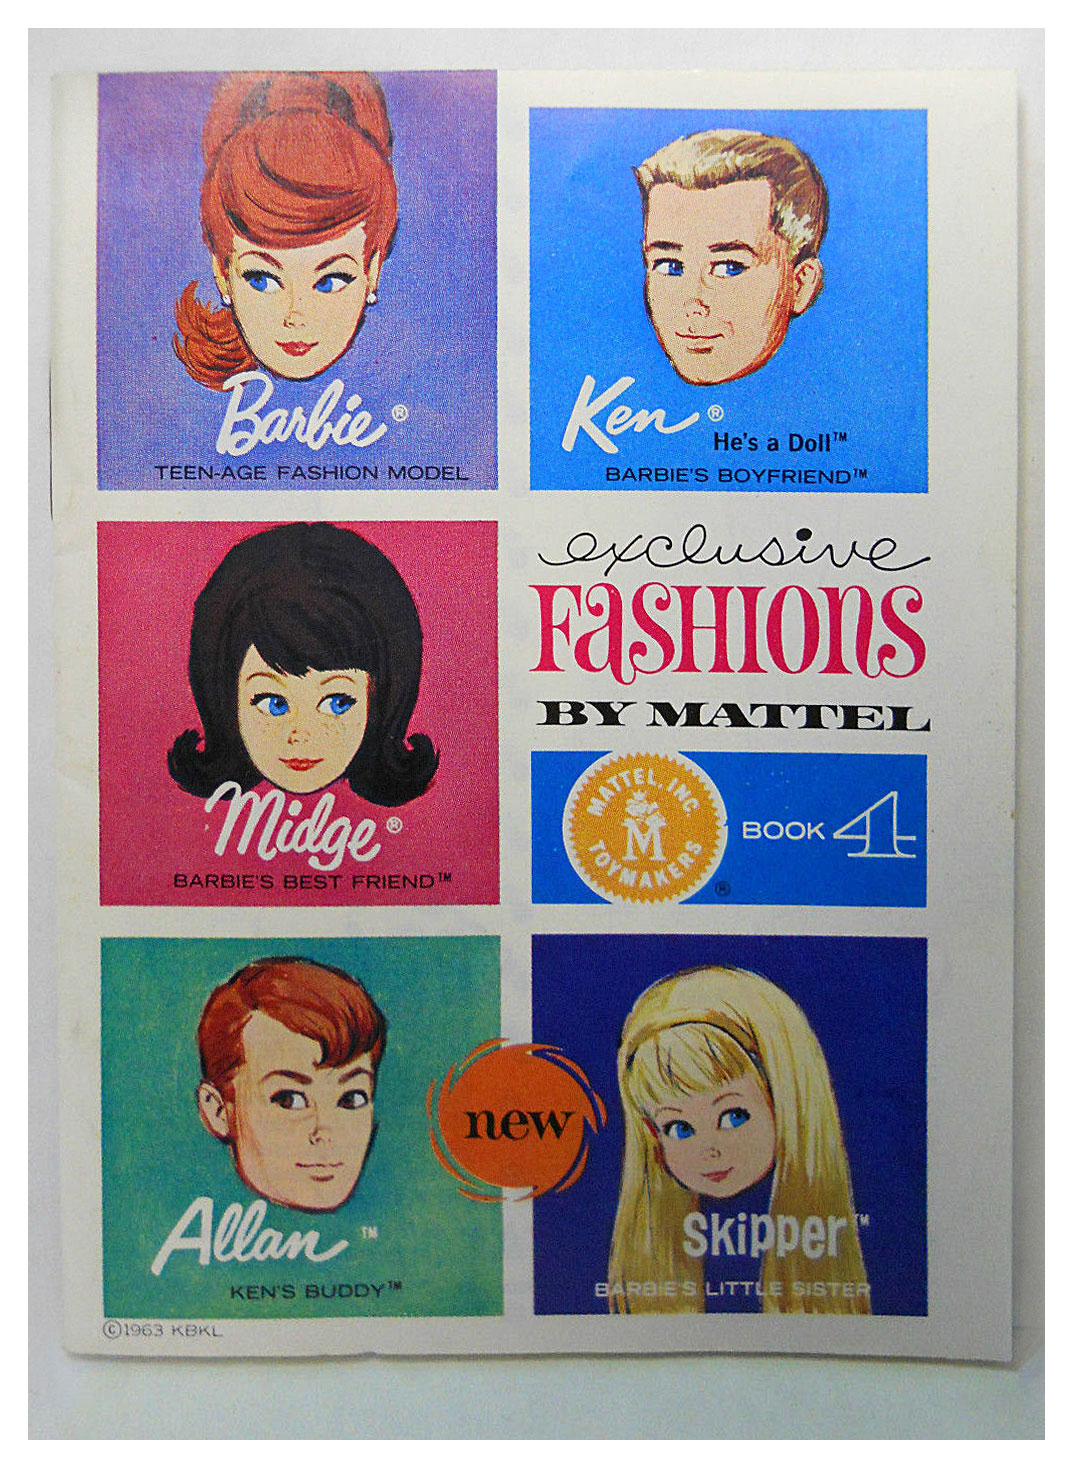 1964 Barbie Ken Exclusive Fashions booklet book 4